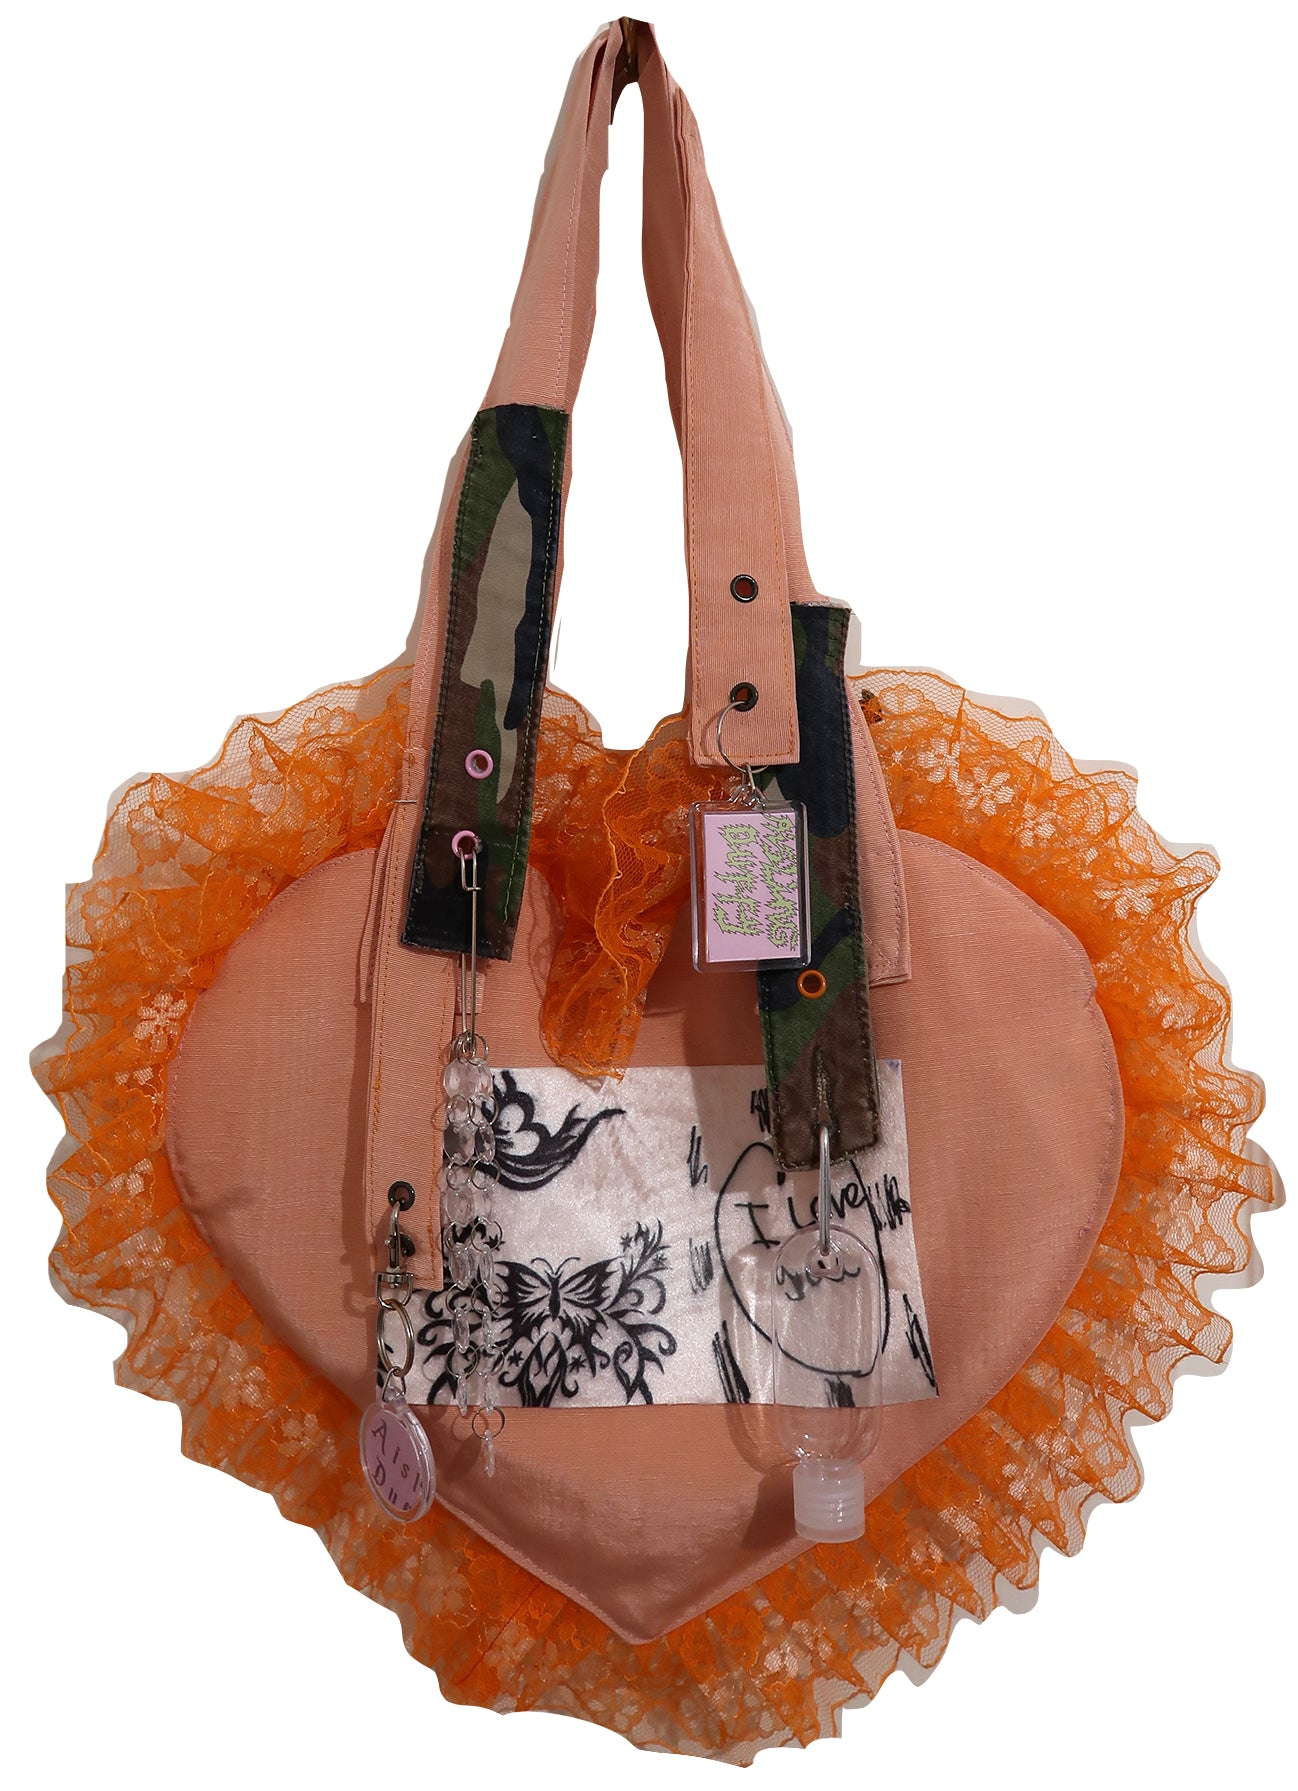 Butterfly Peachy Ruffle Bag ~ AW20 Drop